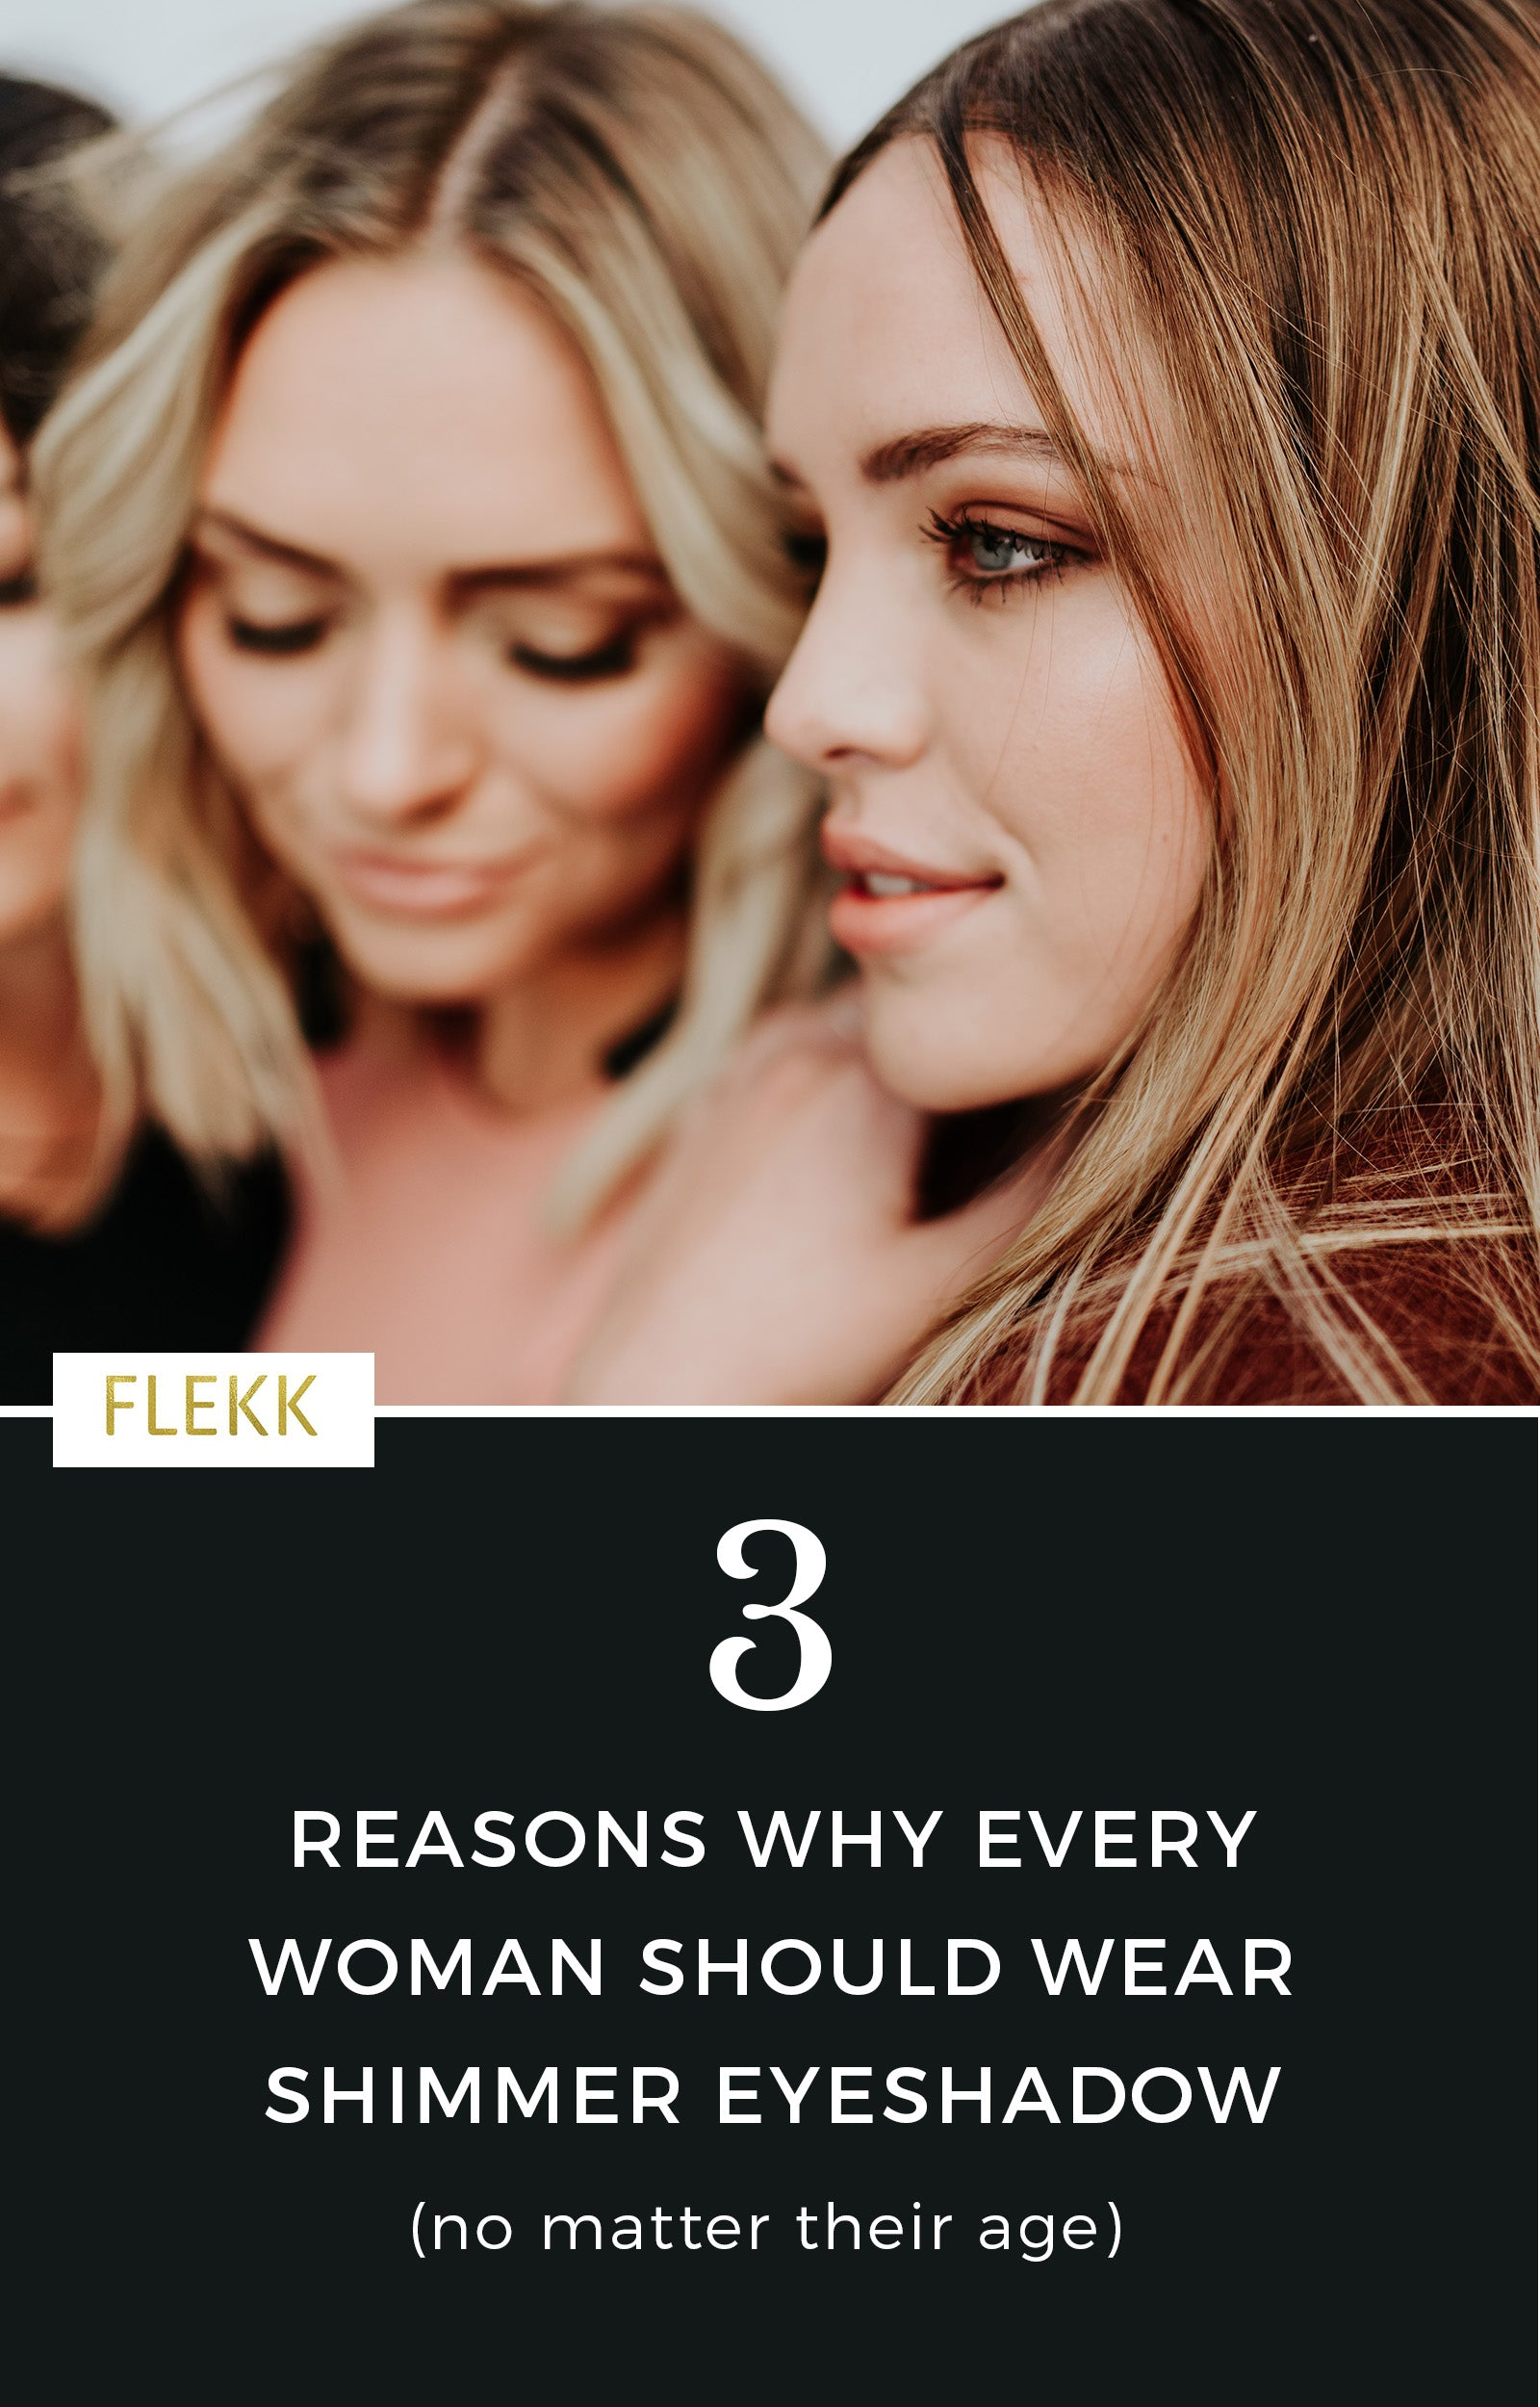 3 Reasons why all women should wear shimmer eyeshadow–no matter their age. Shimmer eyeshadow works for all women of all ages. #shimmer #eyeshadowtips #makeuptips #shimmereyeshadow #flekkcosmetics #eyemakeup